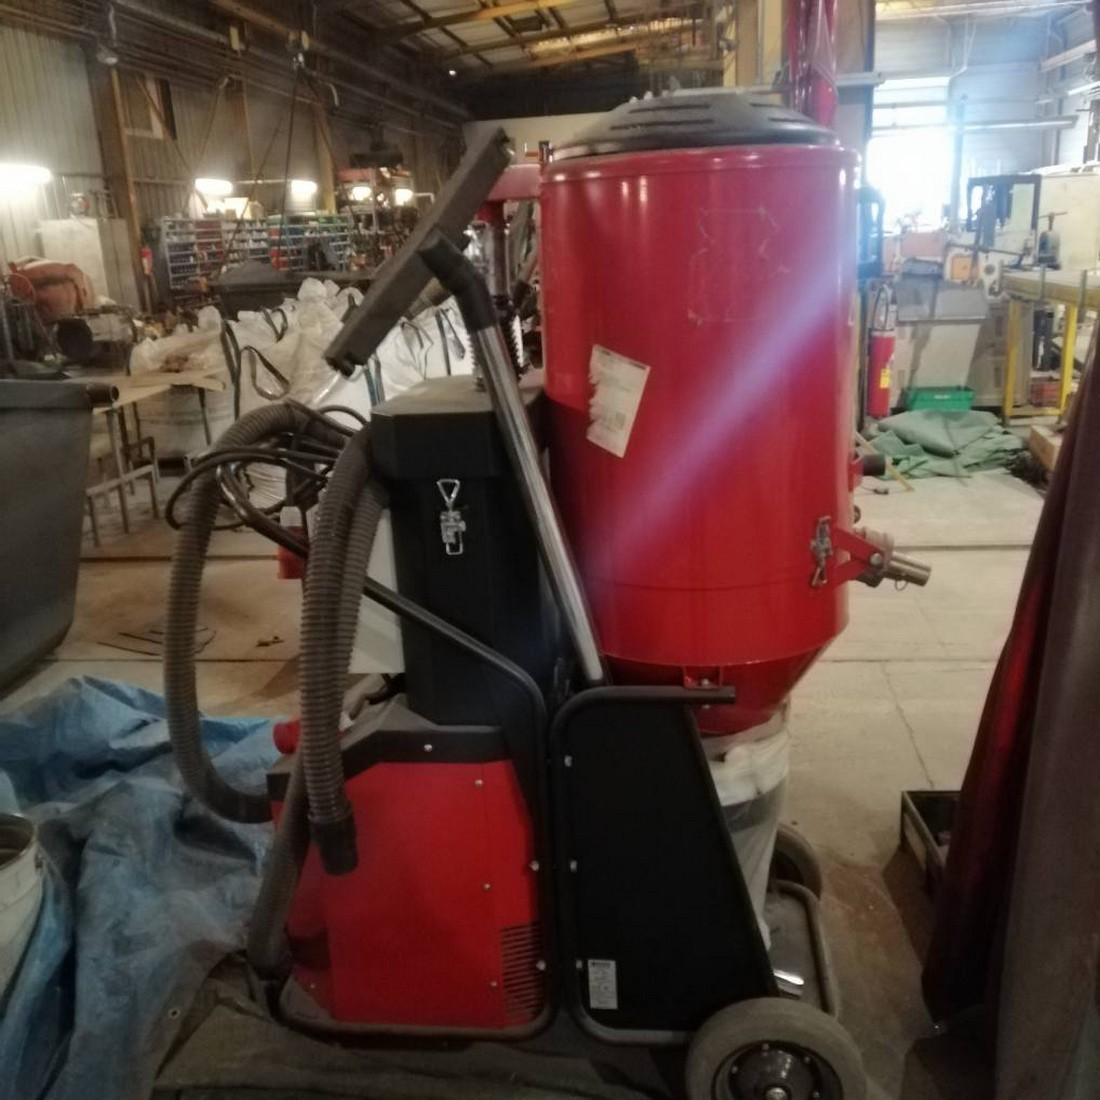 R1J1180 PULLMAN HERMATOR vacuum cleaner - Type T7500 - 5.5Kw - visible by appointment